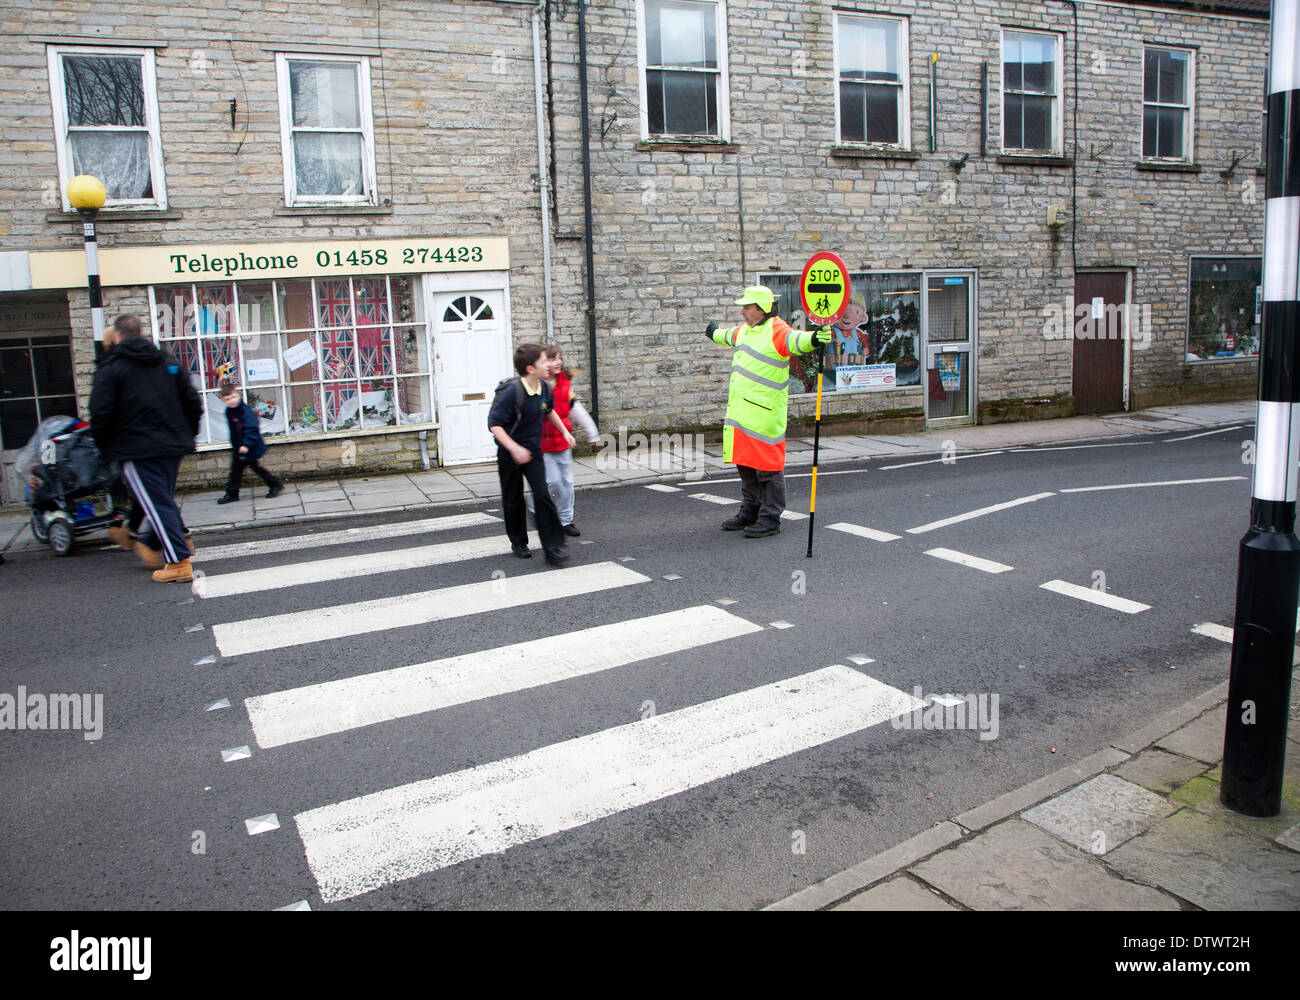 Lollipop man stopping traffic to allow people to cross the road safely, Somerton, Somerset, England - Stock Image